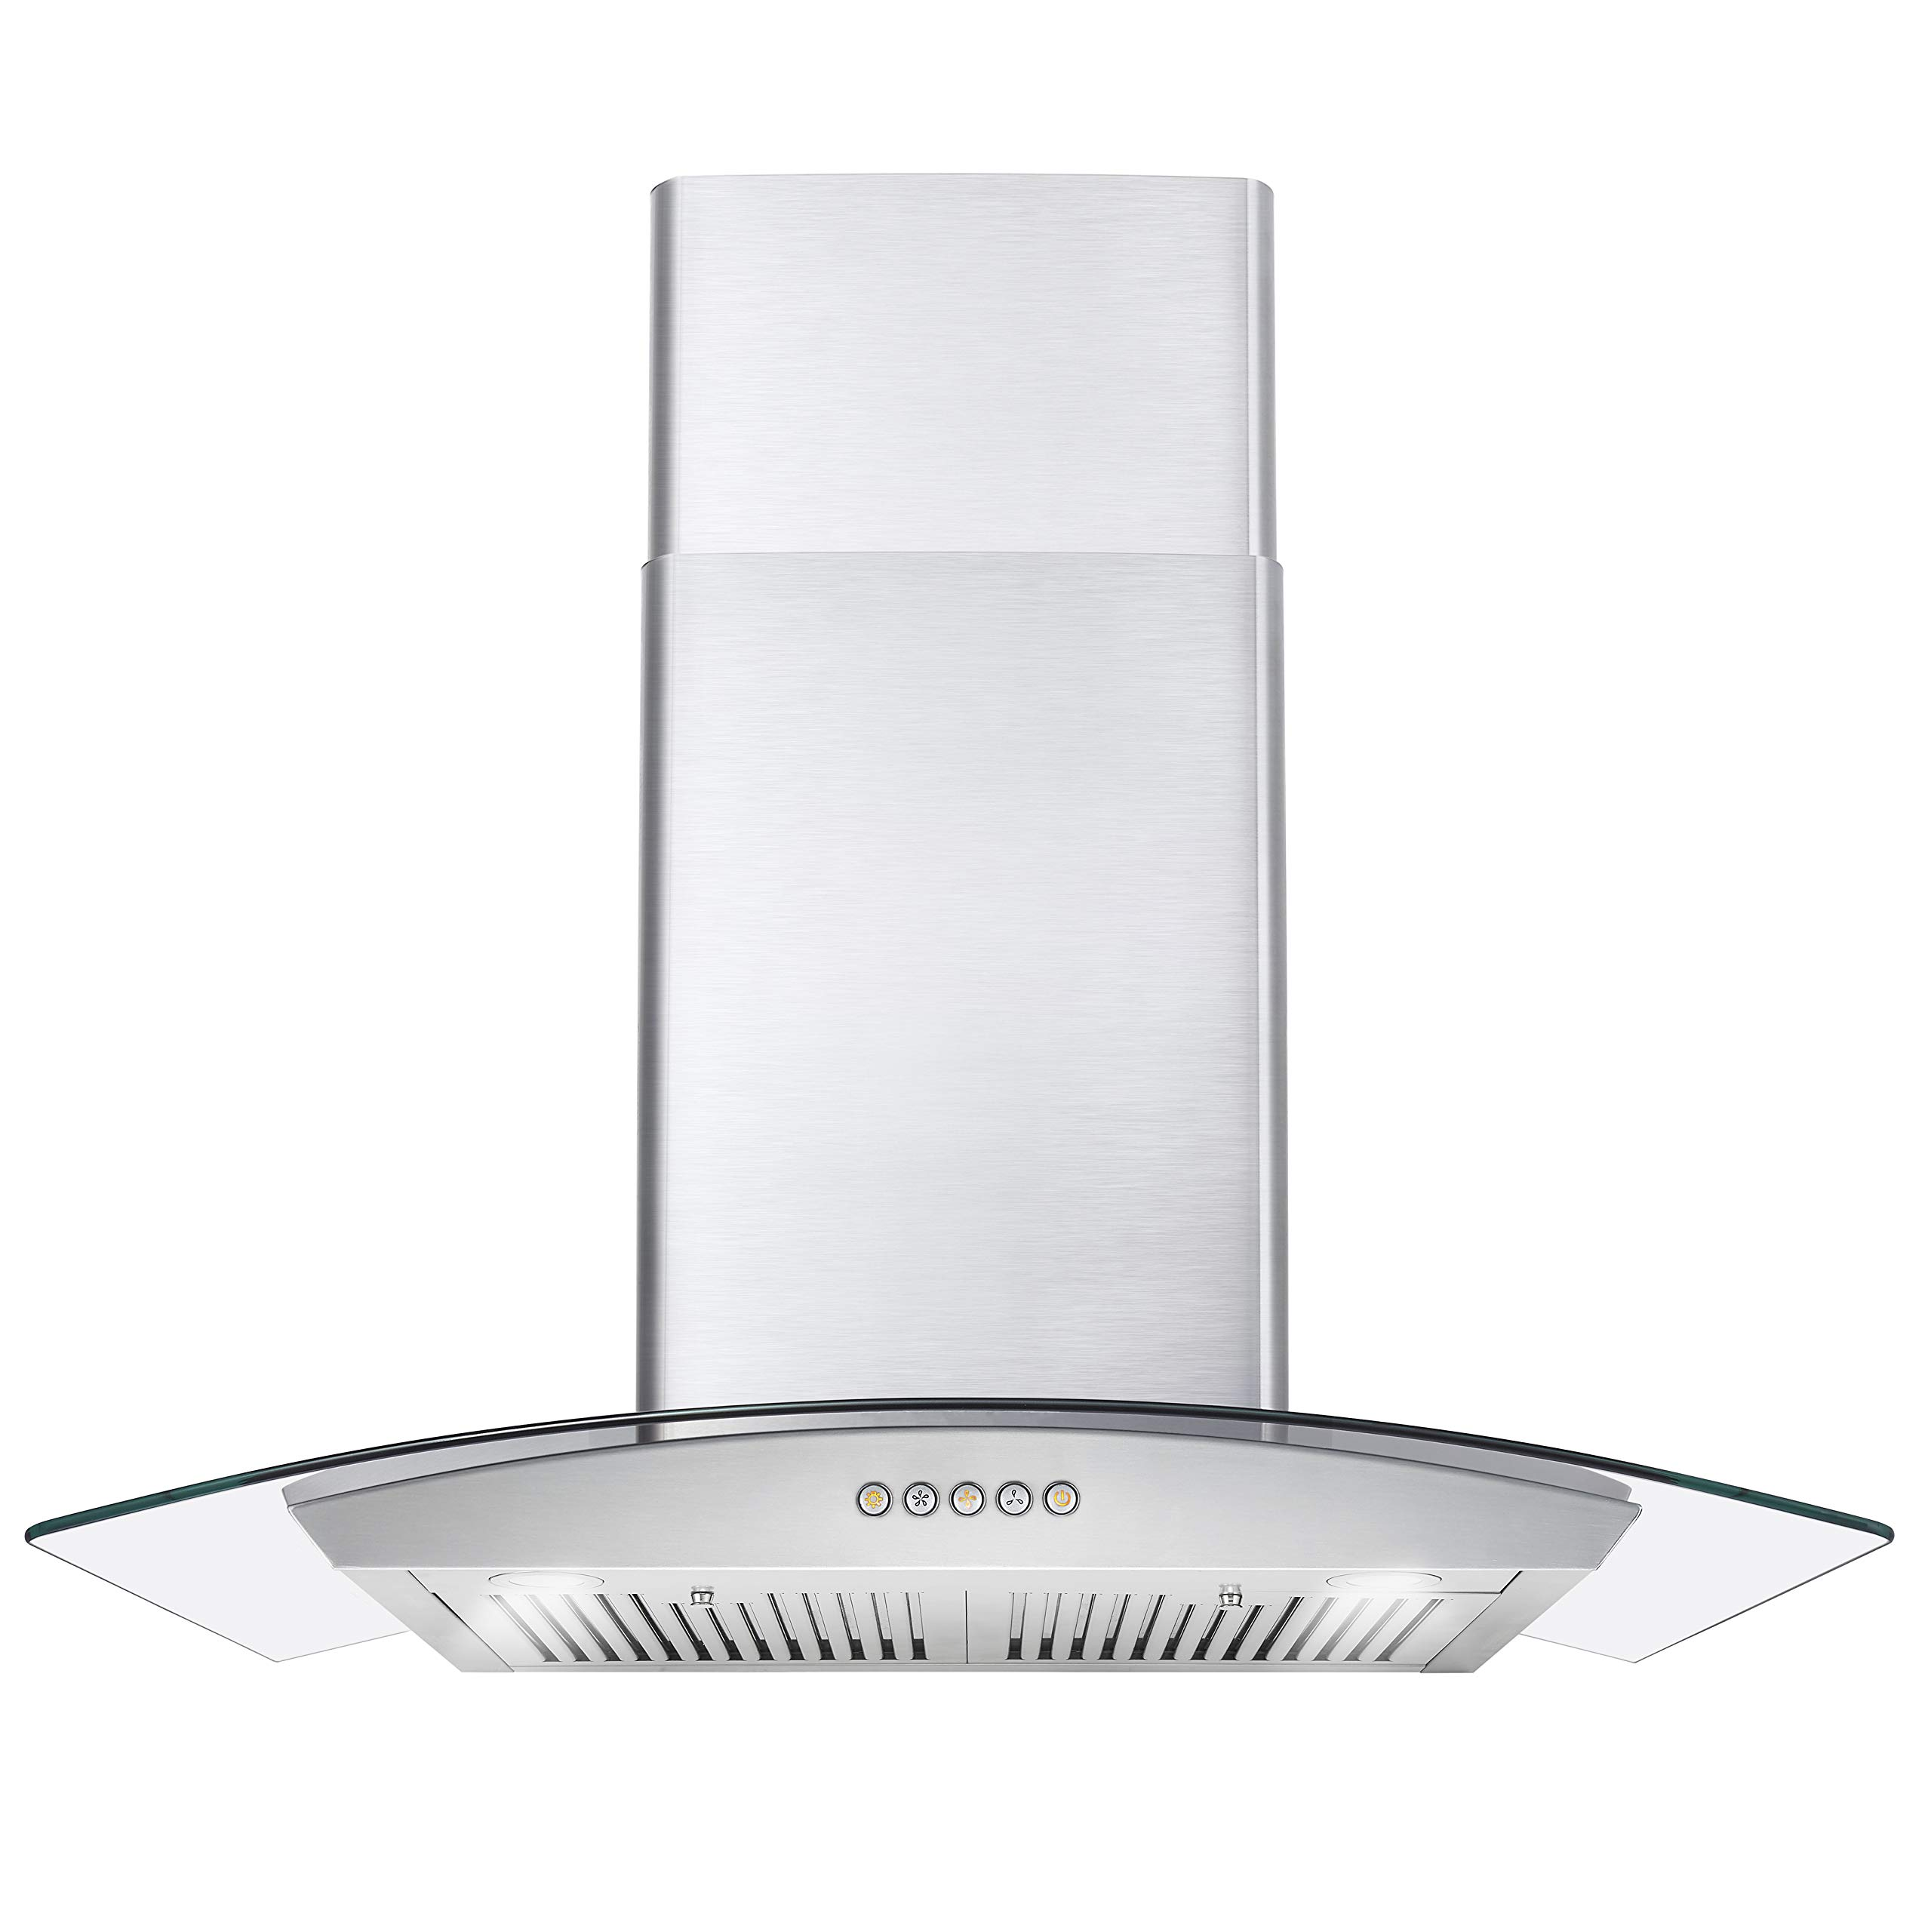 Cosmo COS 668WRC75 Range Hood inches